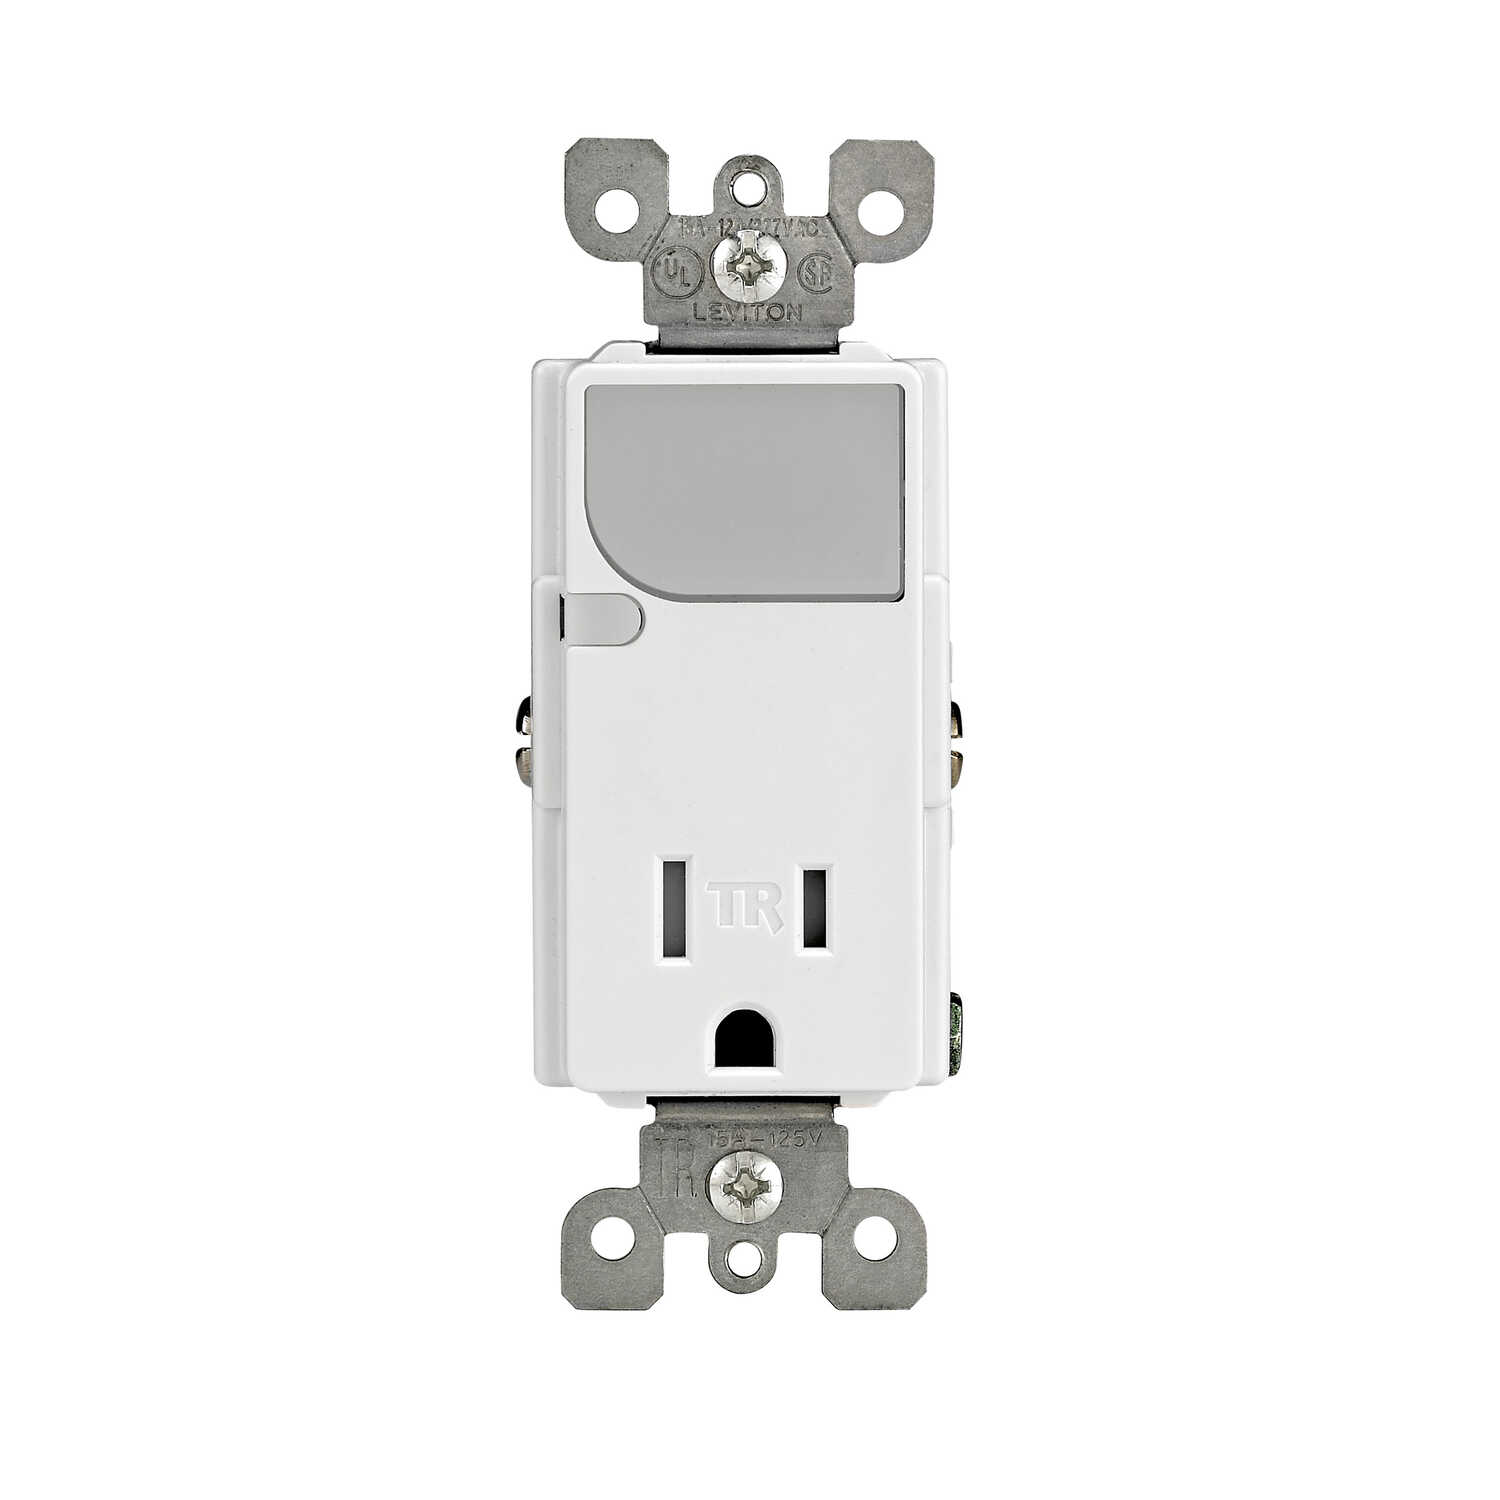 Leviton  Decora  15 amps 125 volt White  Combination Switch/Outlet  5-15R  1 pk